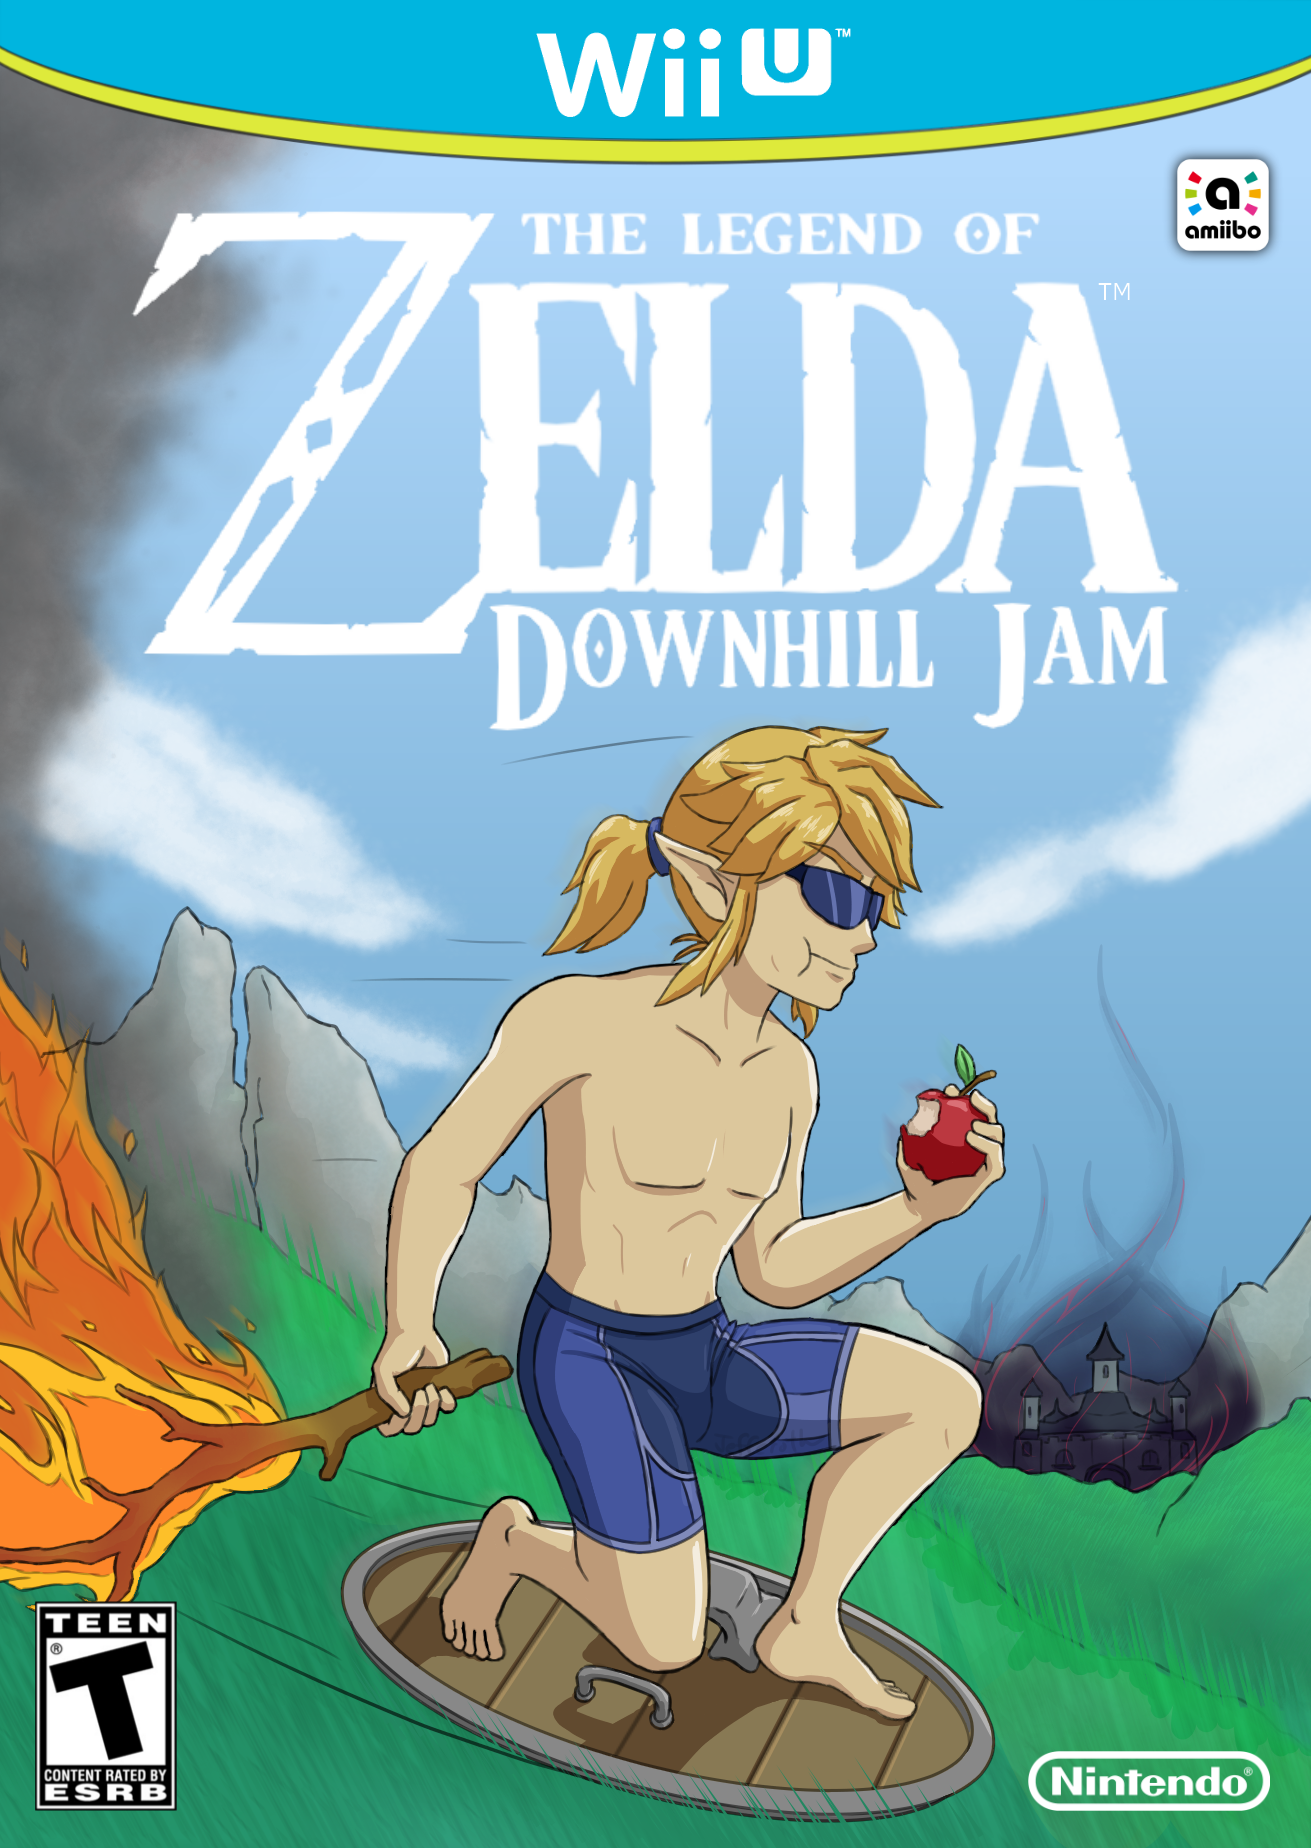 The Legend of Zelda Downhill Jam